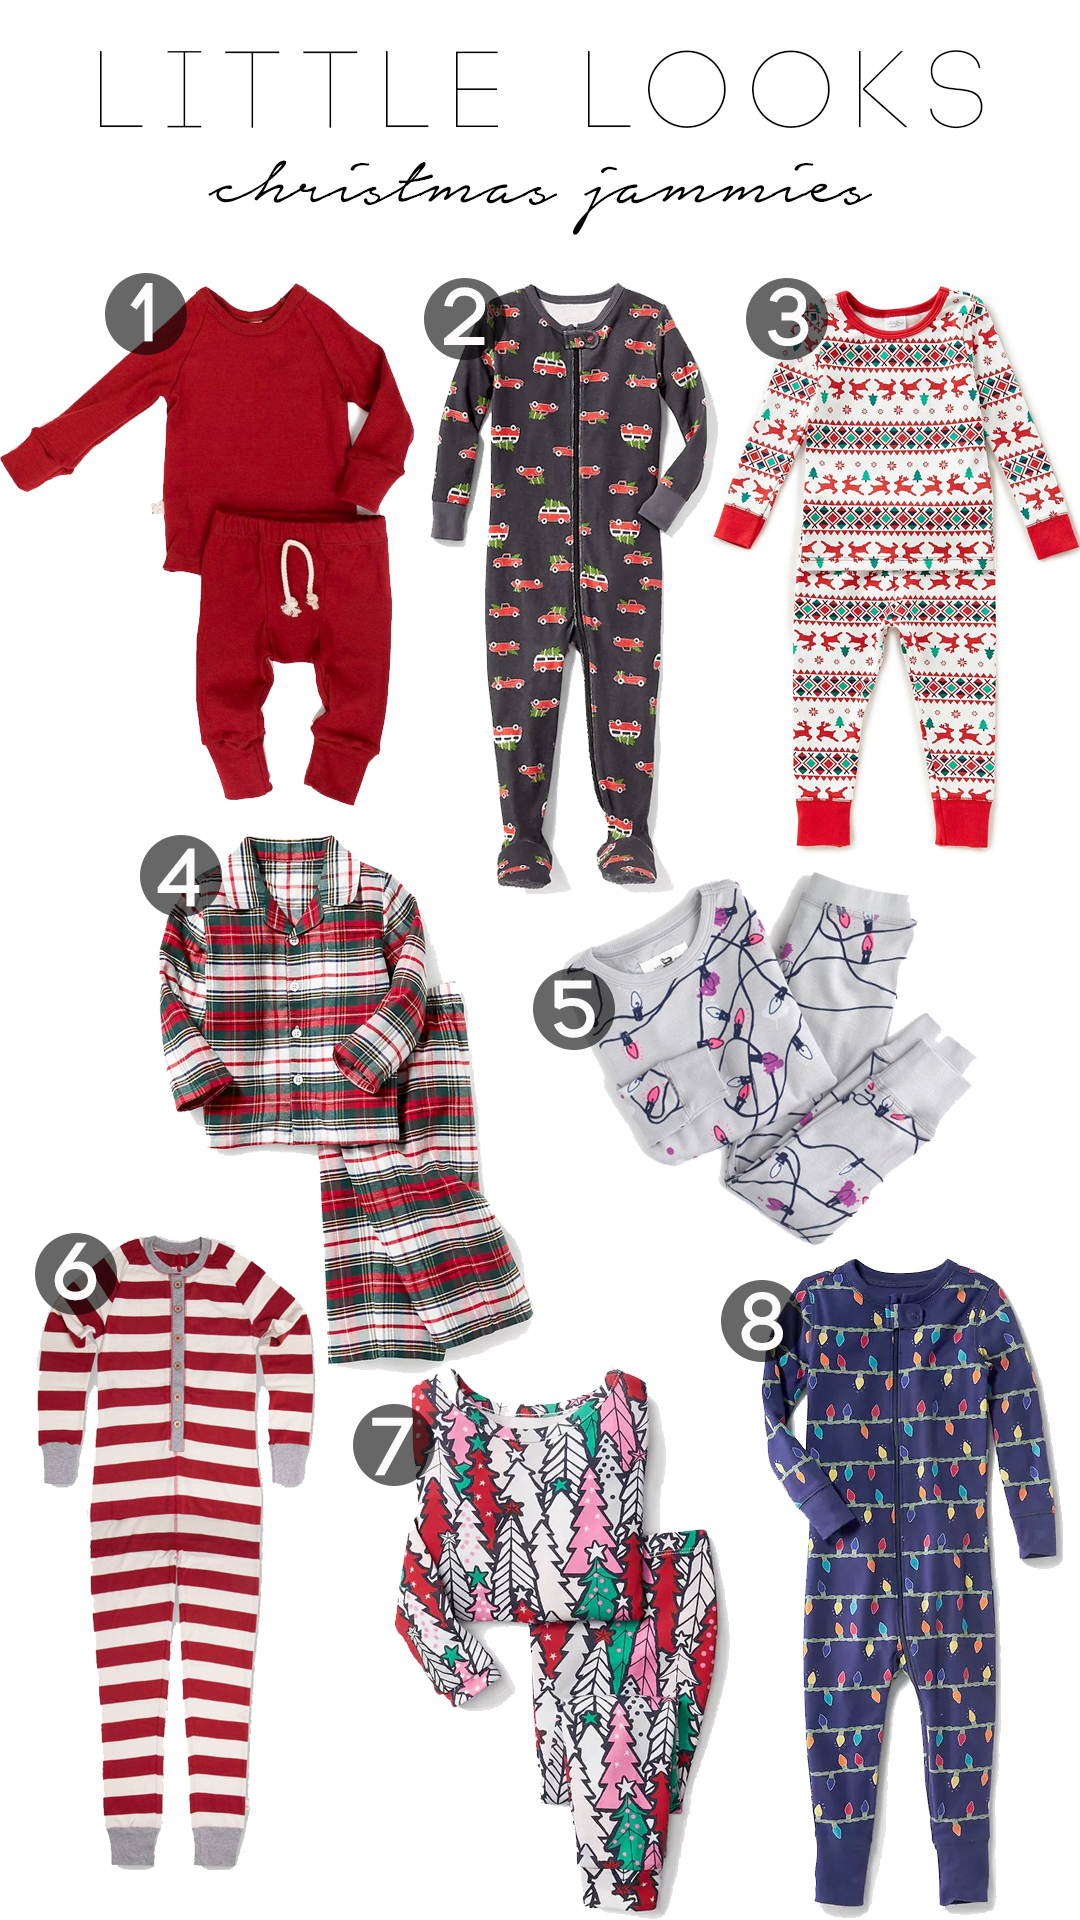 Little looks: Christmas jammies 2017 | Tomorrow\'s To Dos